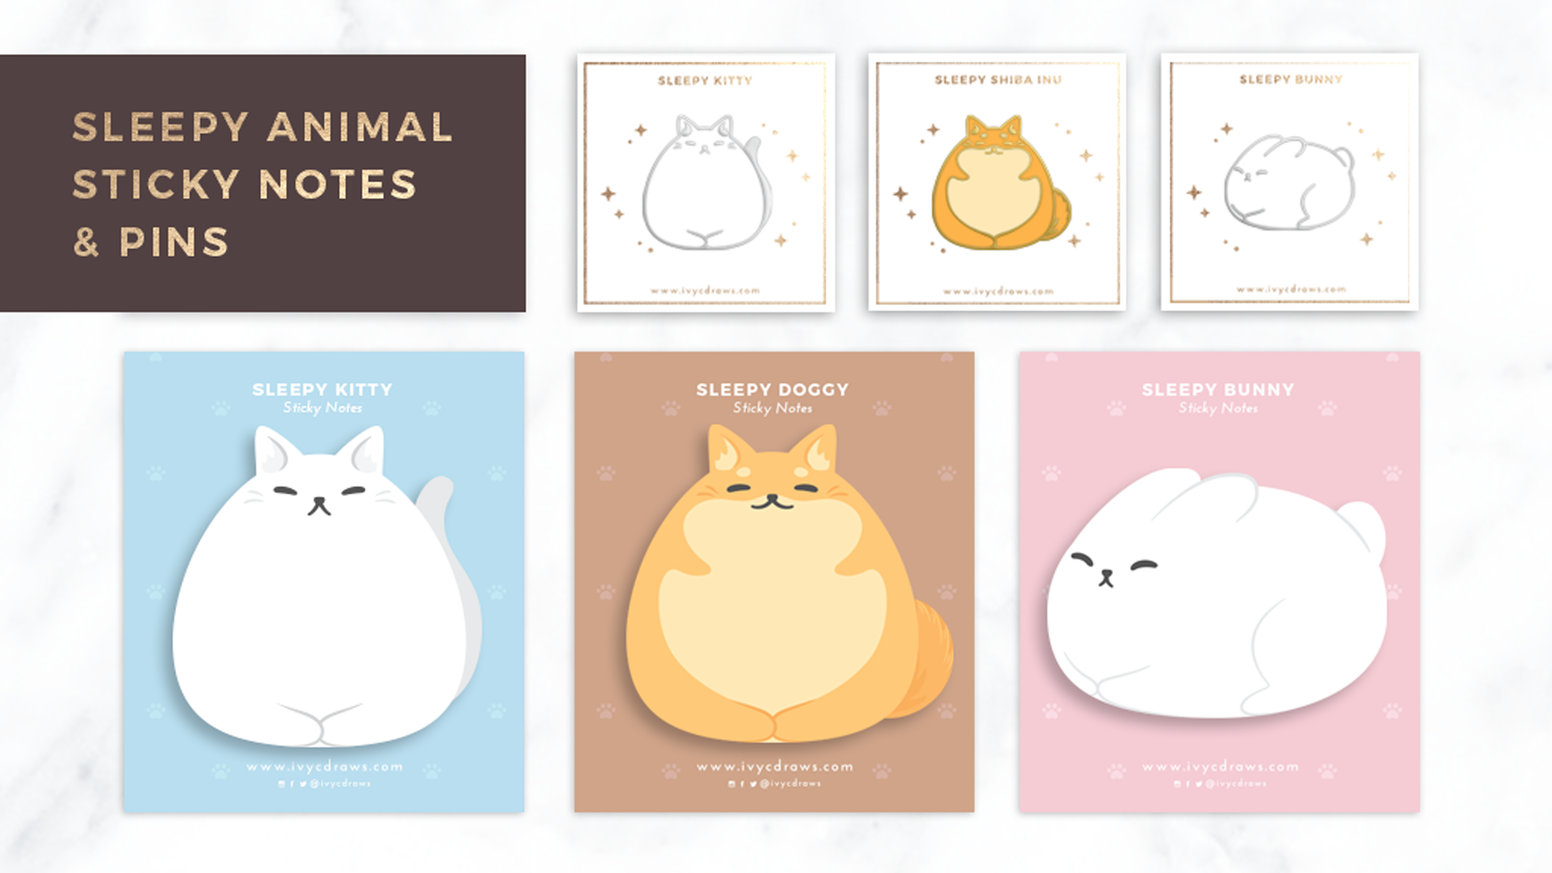 A series of cute sleepy animal sticky notes and enamel pins inspired by family pets and